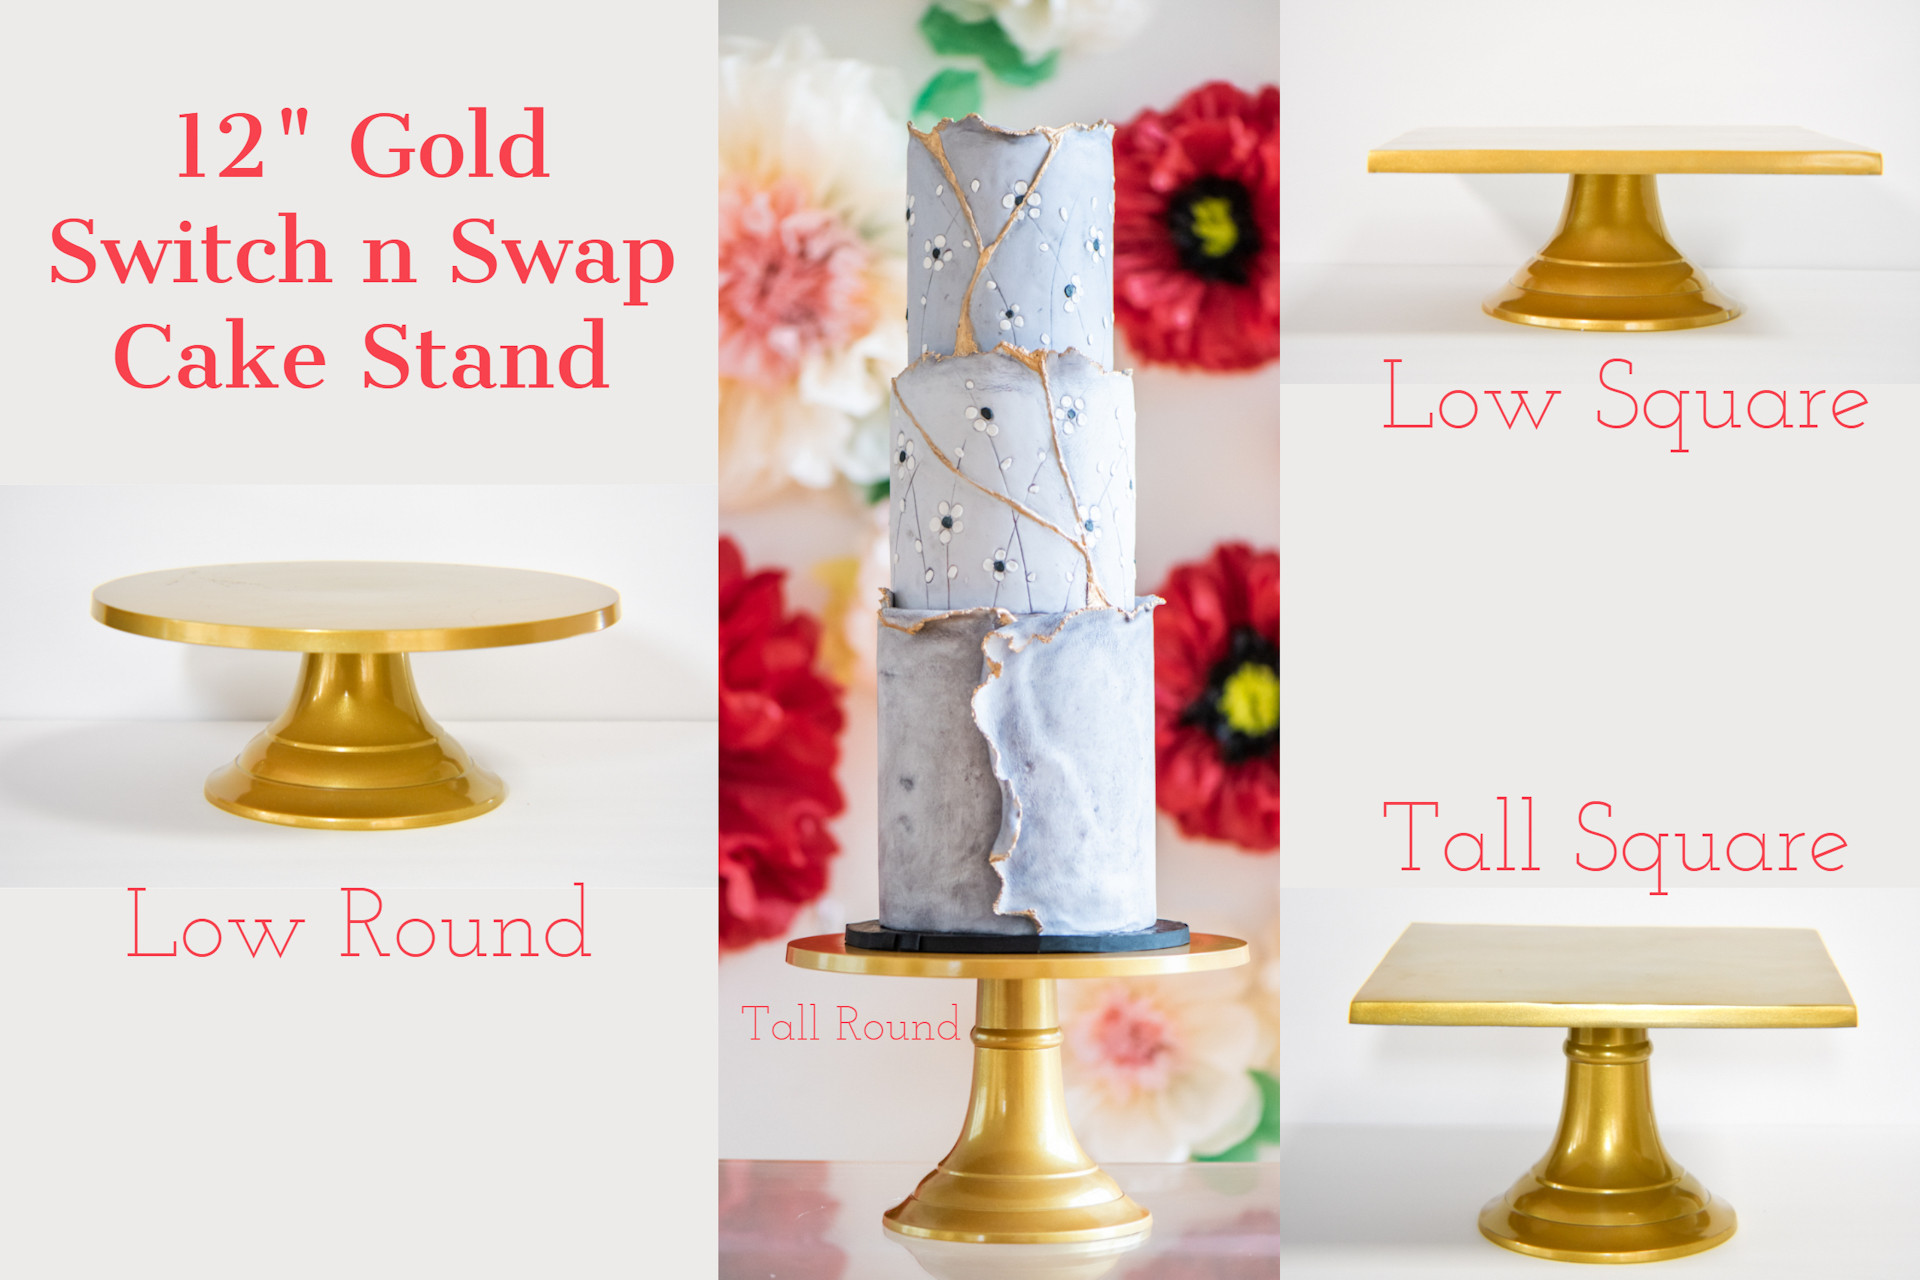 Gold Switch n Swap Cake Stand